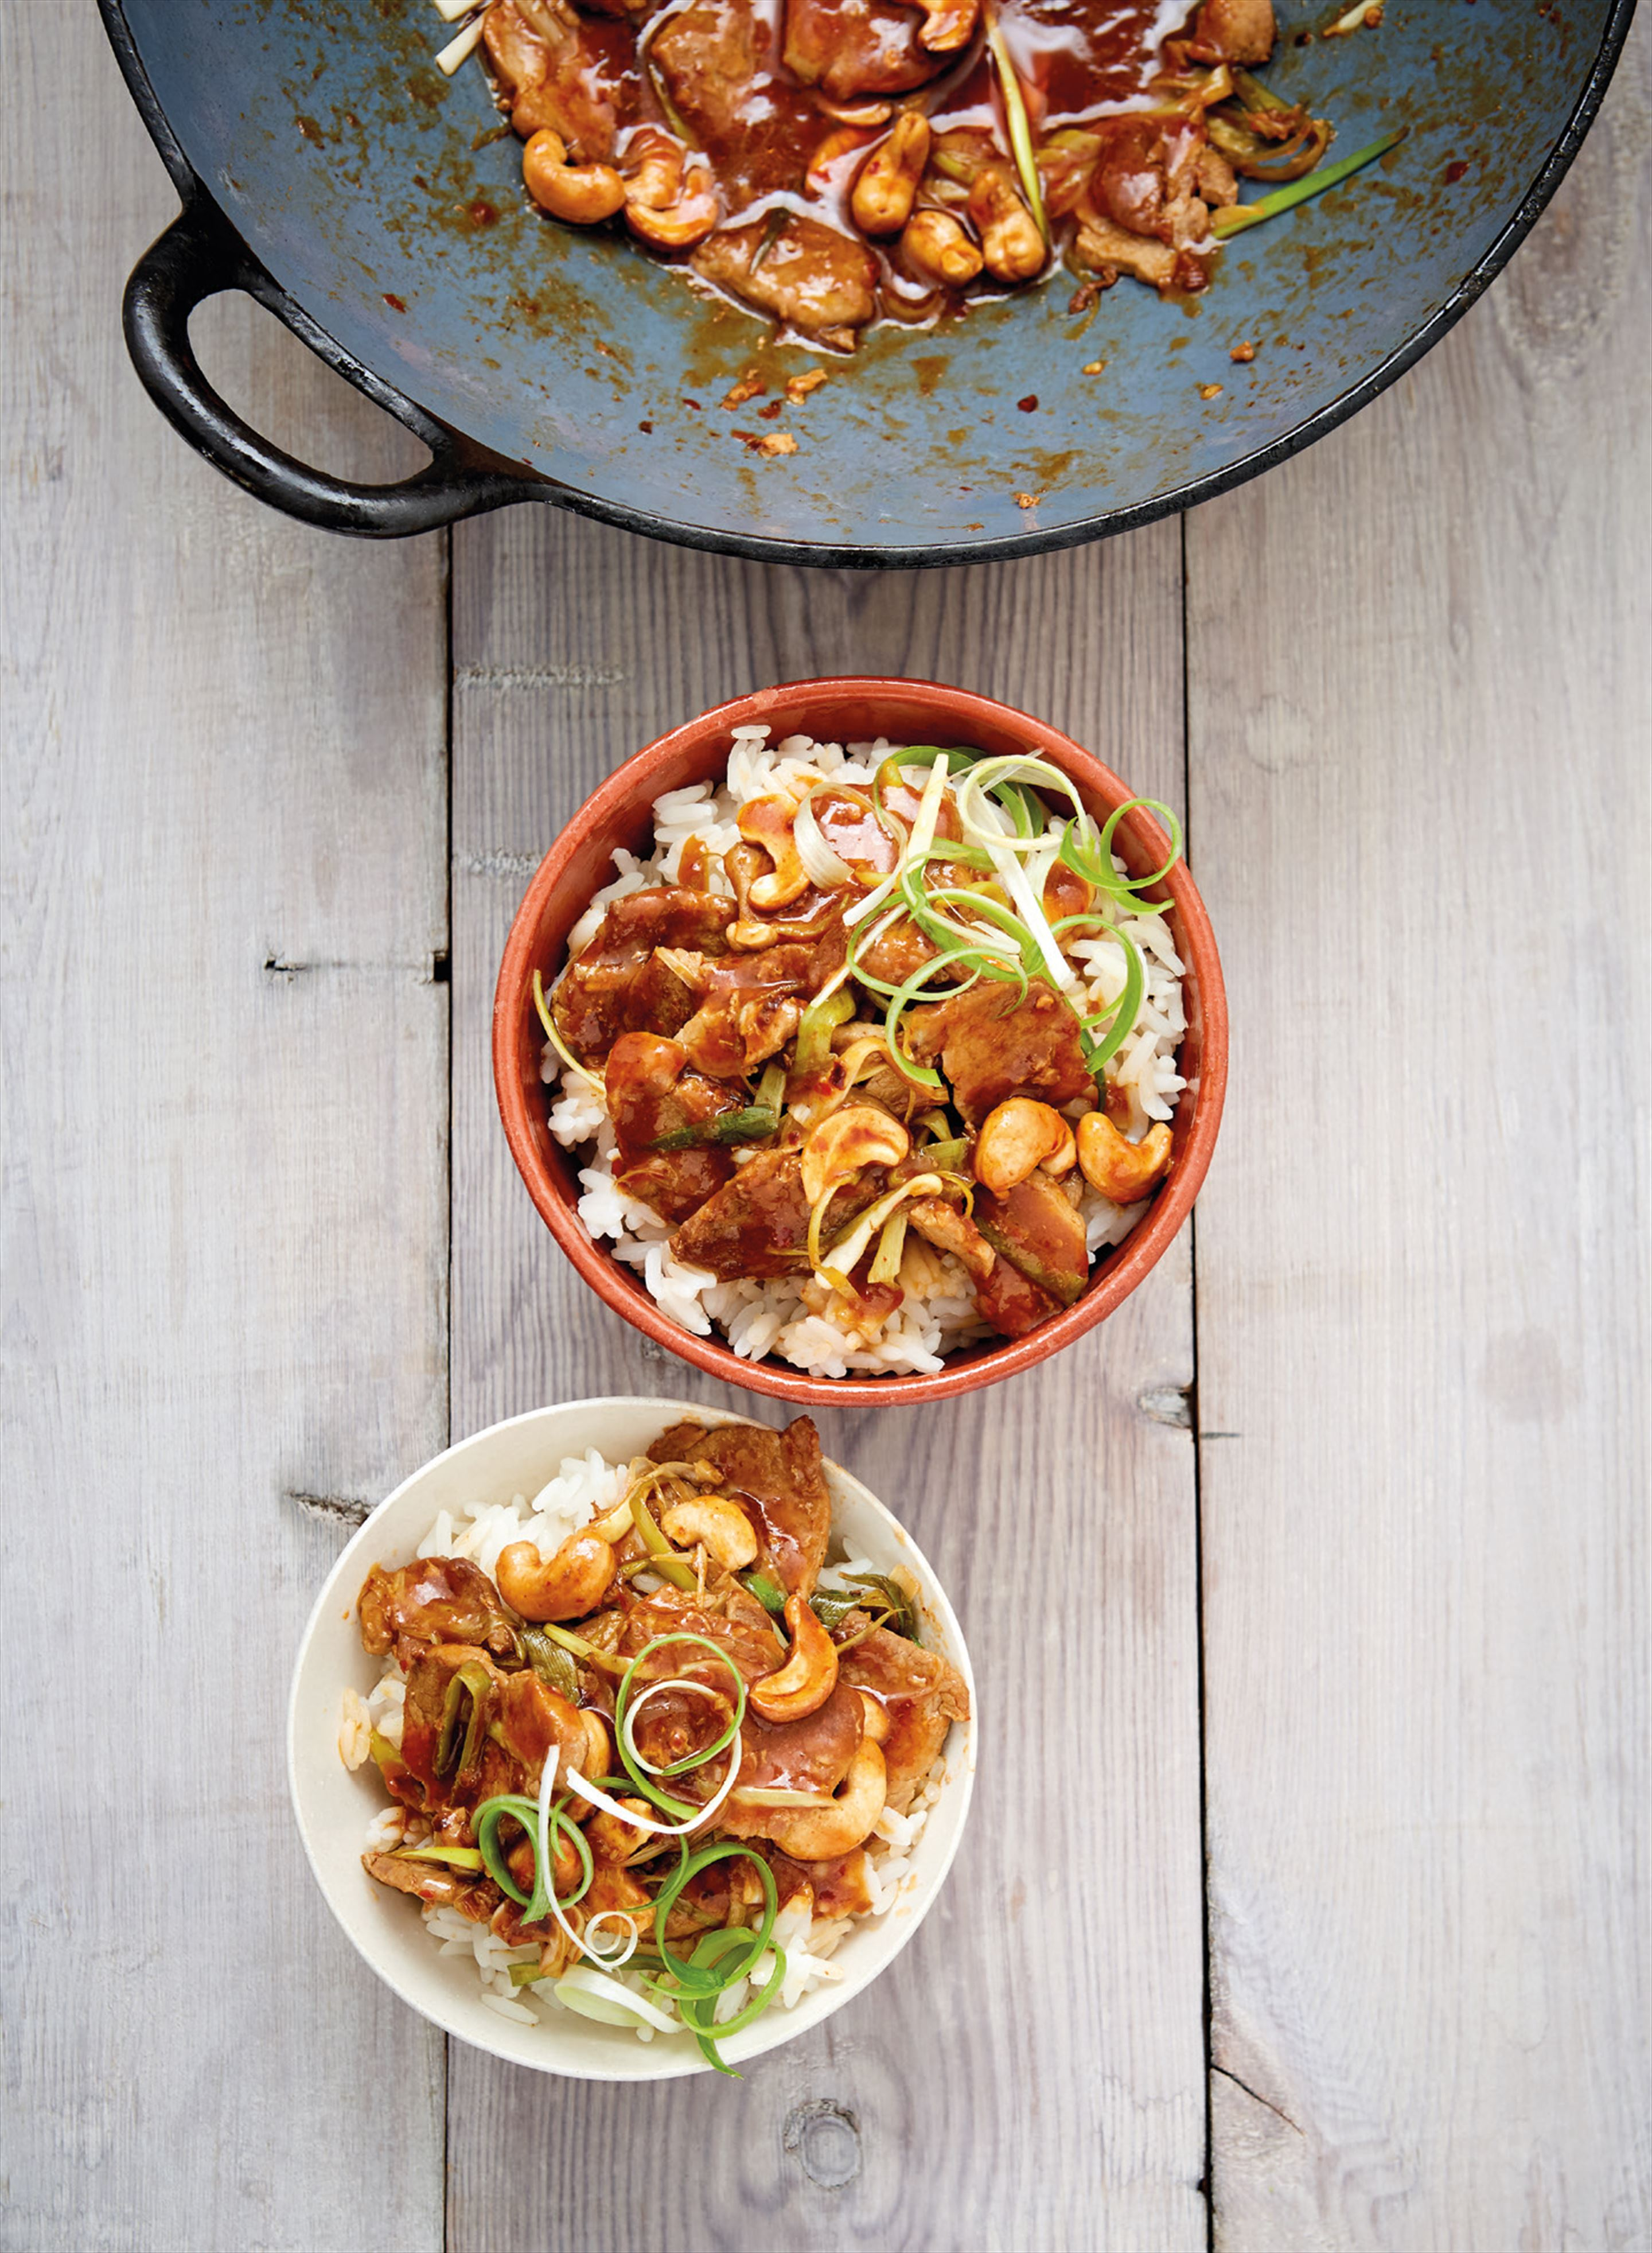 Pork and cashew nut stir-fry